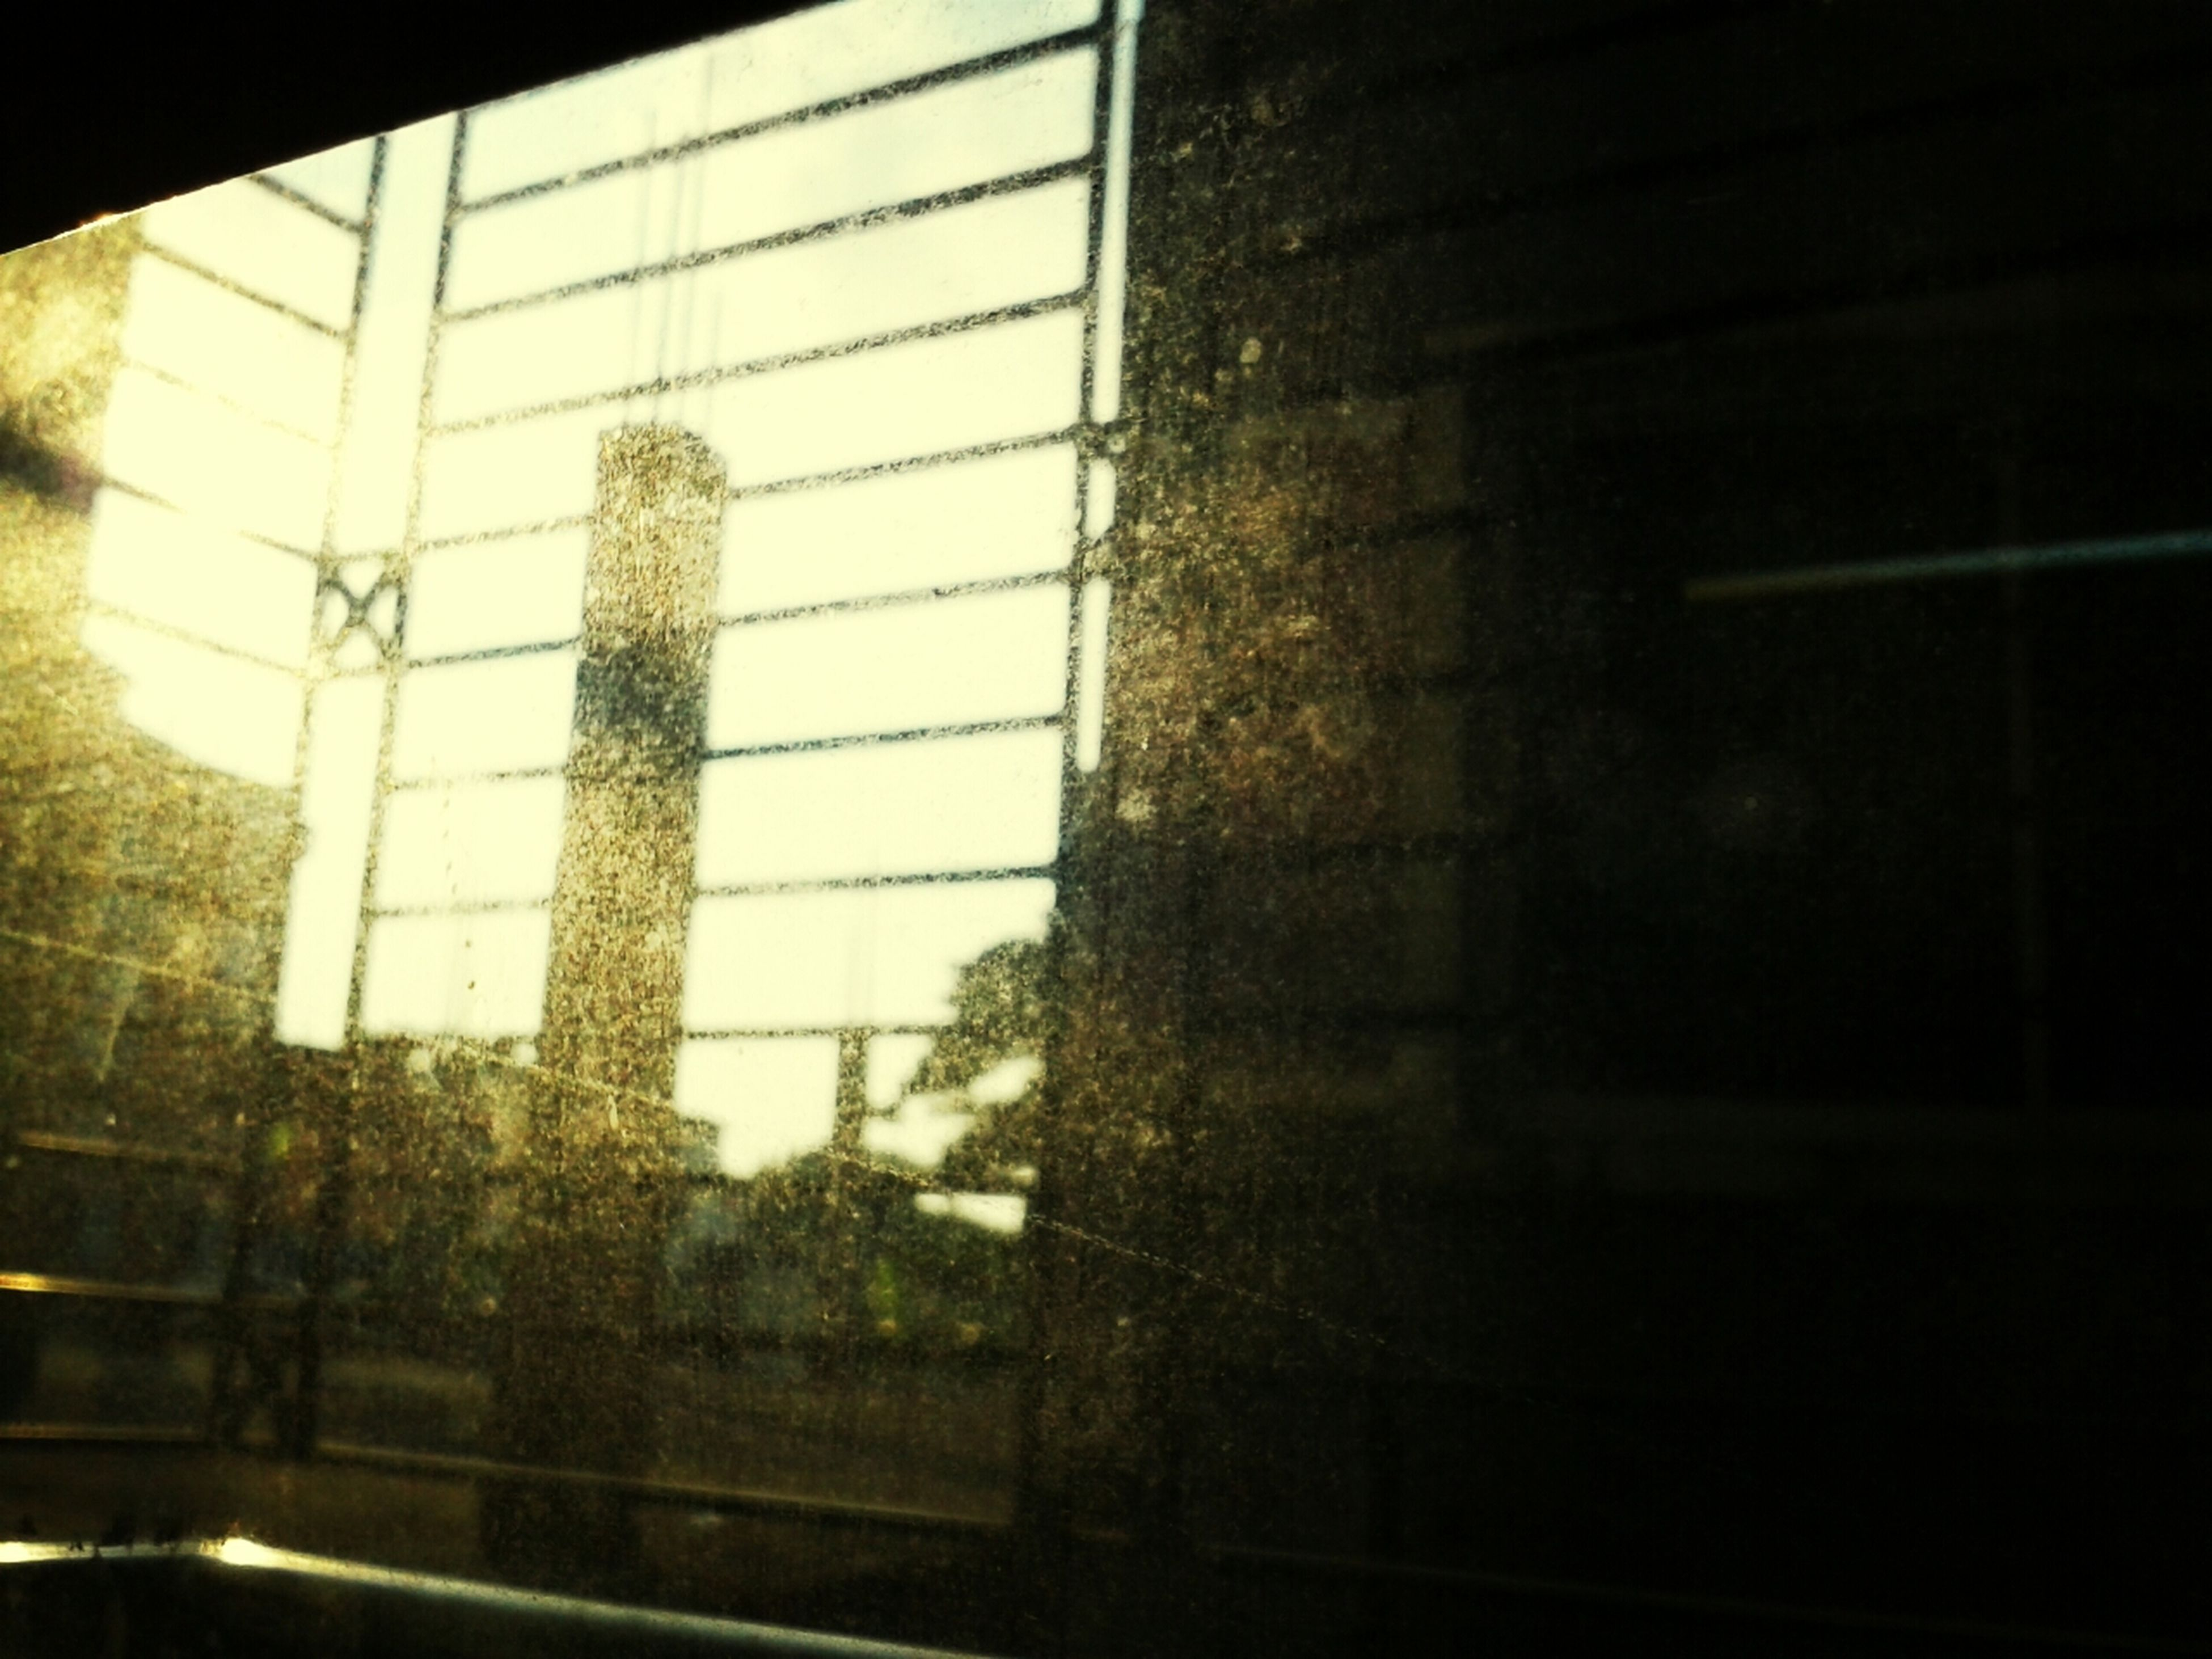 window, indoors, glass - material, transparent, built structure, architecture, reflection, building exterior, glass, looking through window, silhouette, no people, day, building, sky, low angle view, rain, wet, transportation, close-up